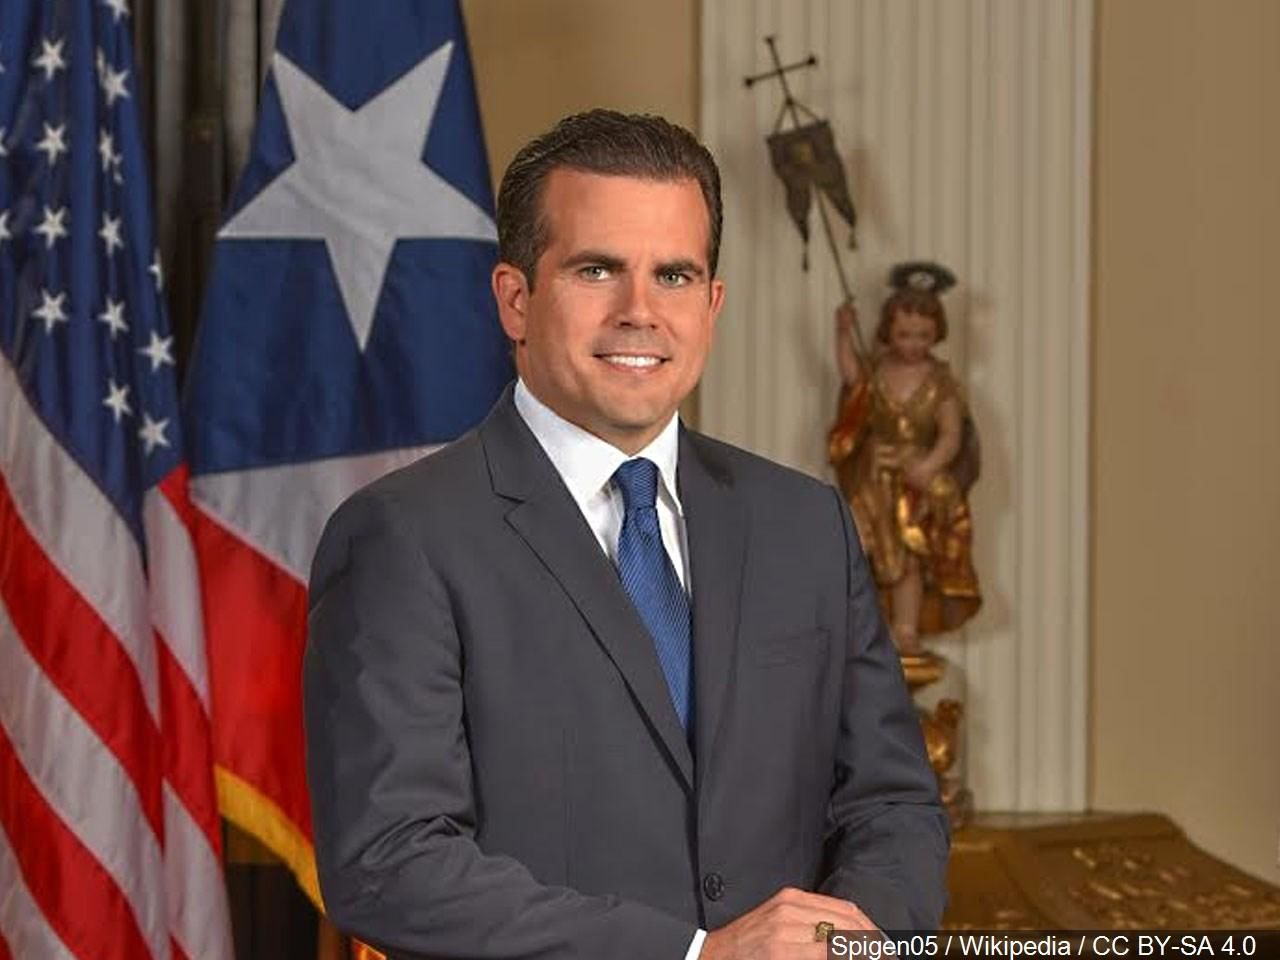 Puerto Rico's embattled governor says he will not seek re-election but will not resign as the island's leader, though he will step down as head of his pro-statehood party. (MGN){ }